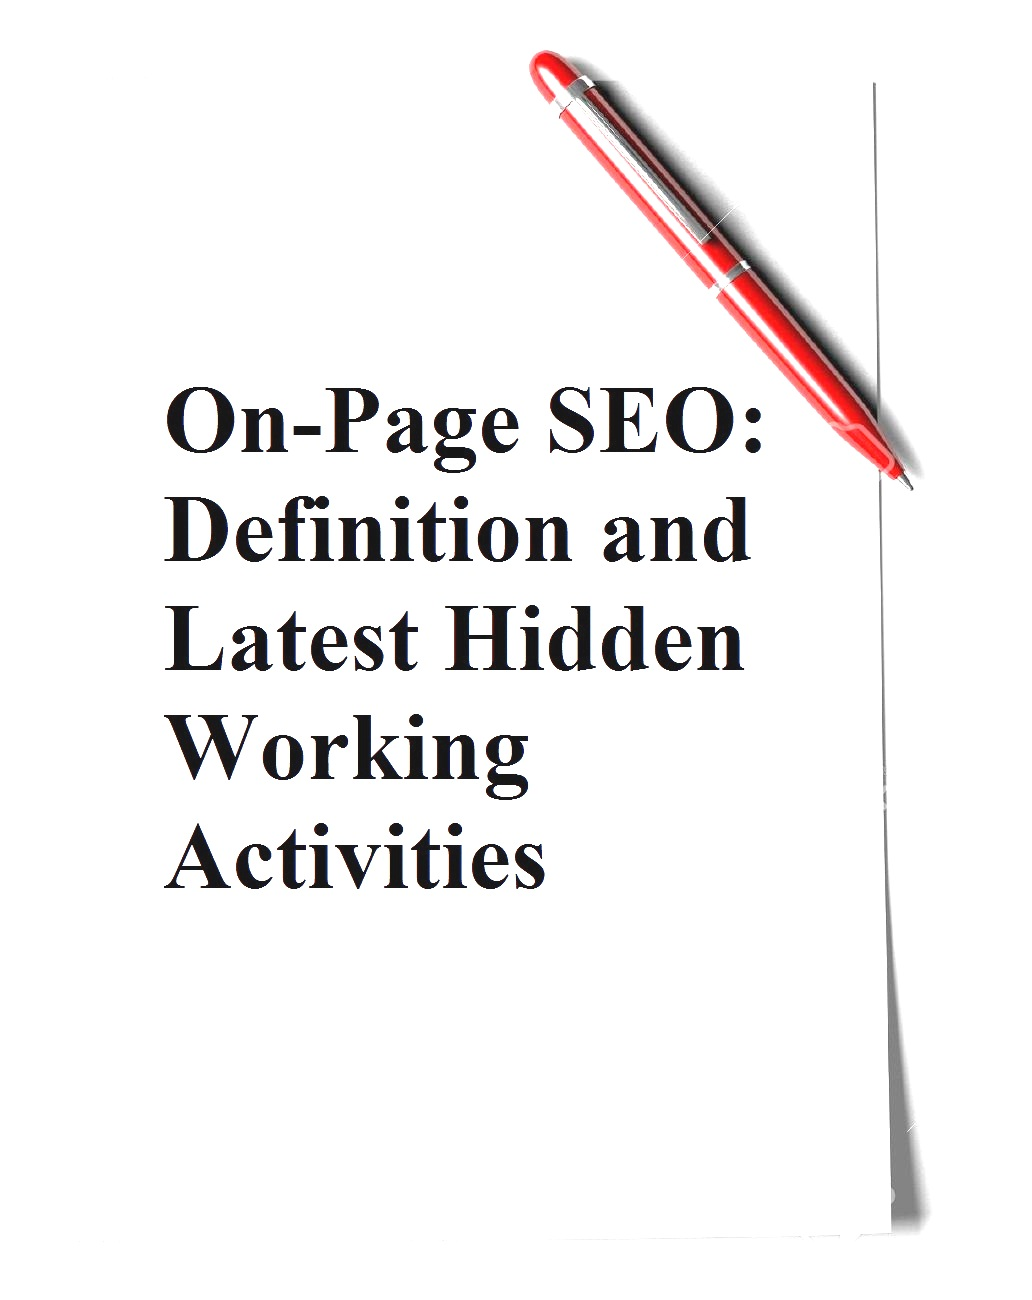 On-Page SEO: Definition and Latest Hidden Working Activities